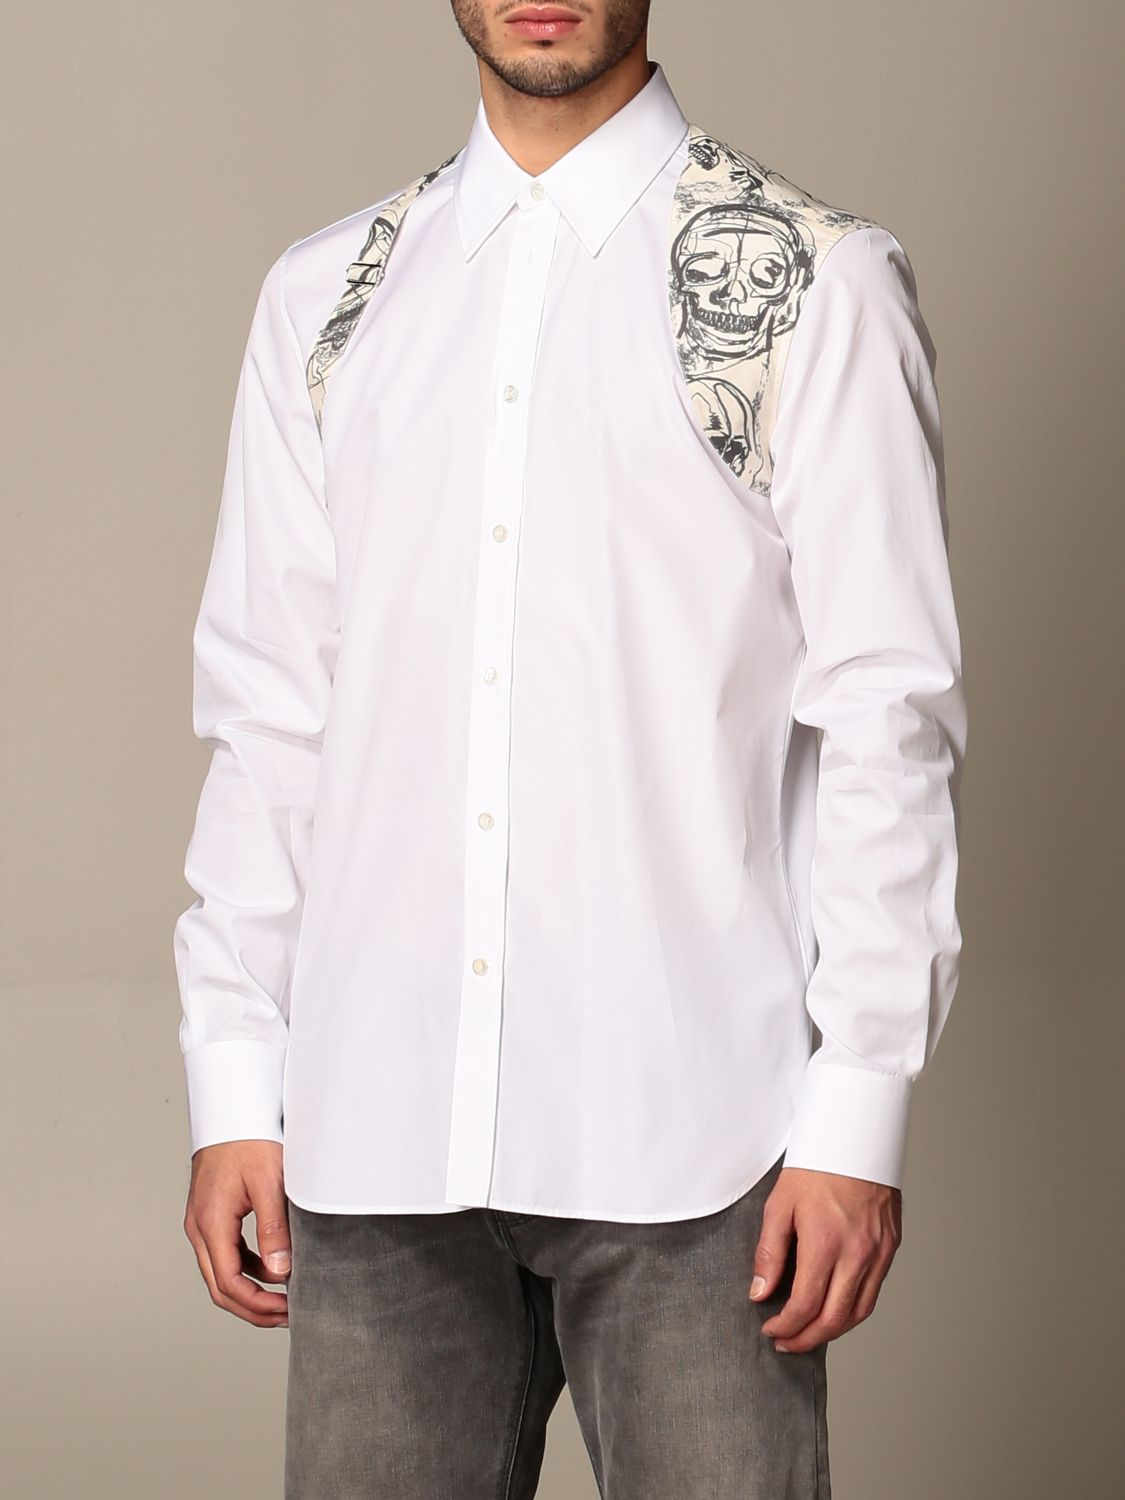 Shirt Alexander Mcqueen: Alexander McQueen shirt with skull print buckle white 4